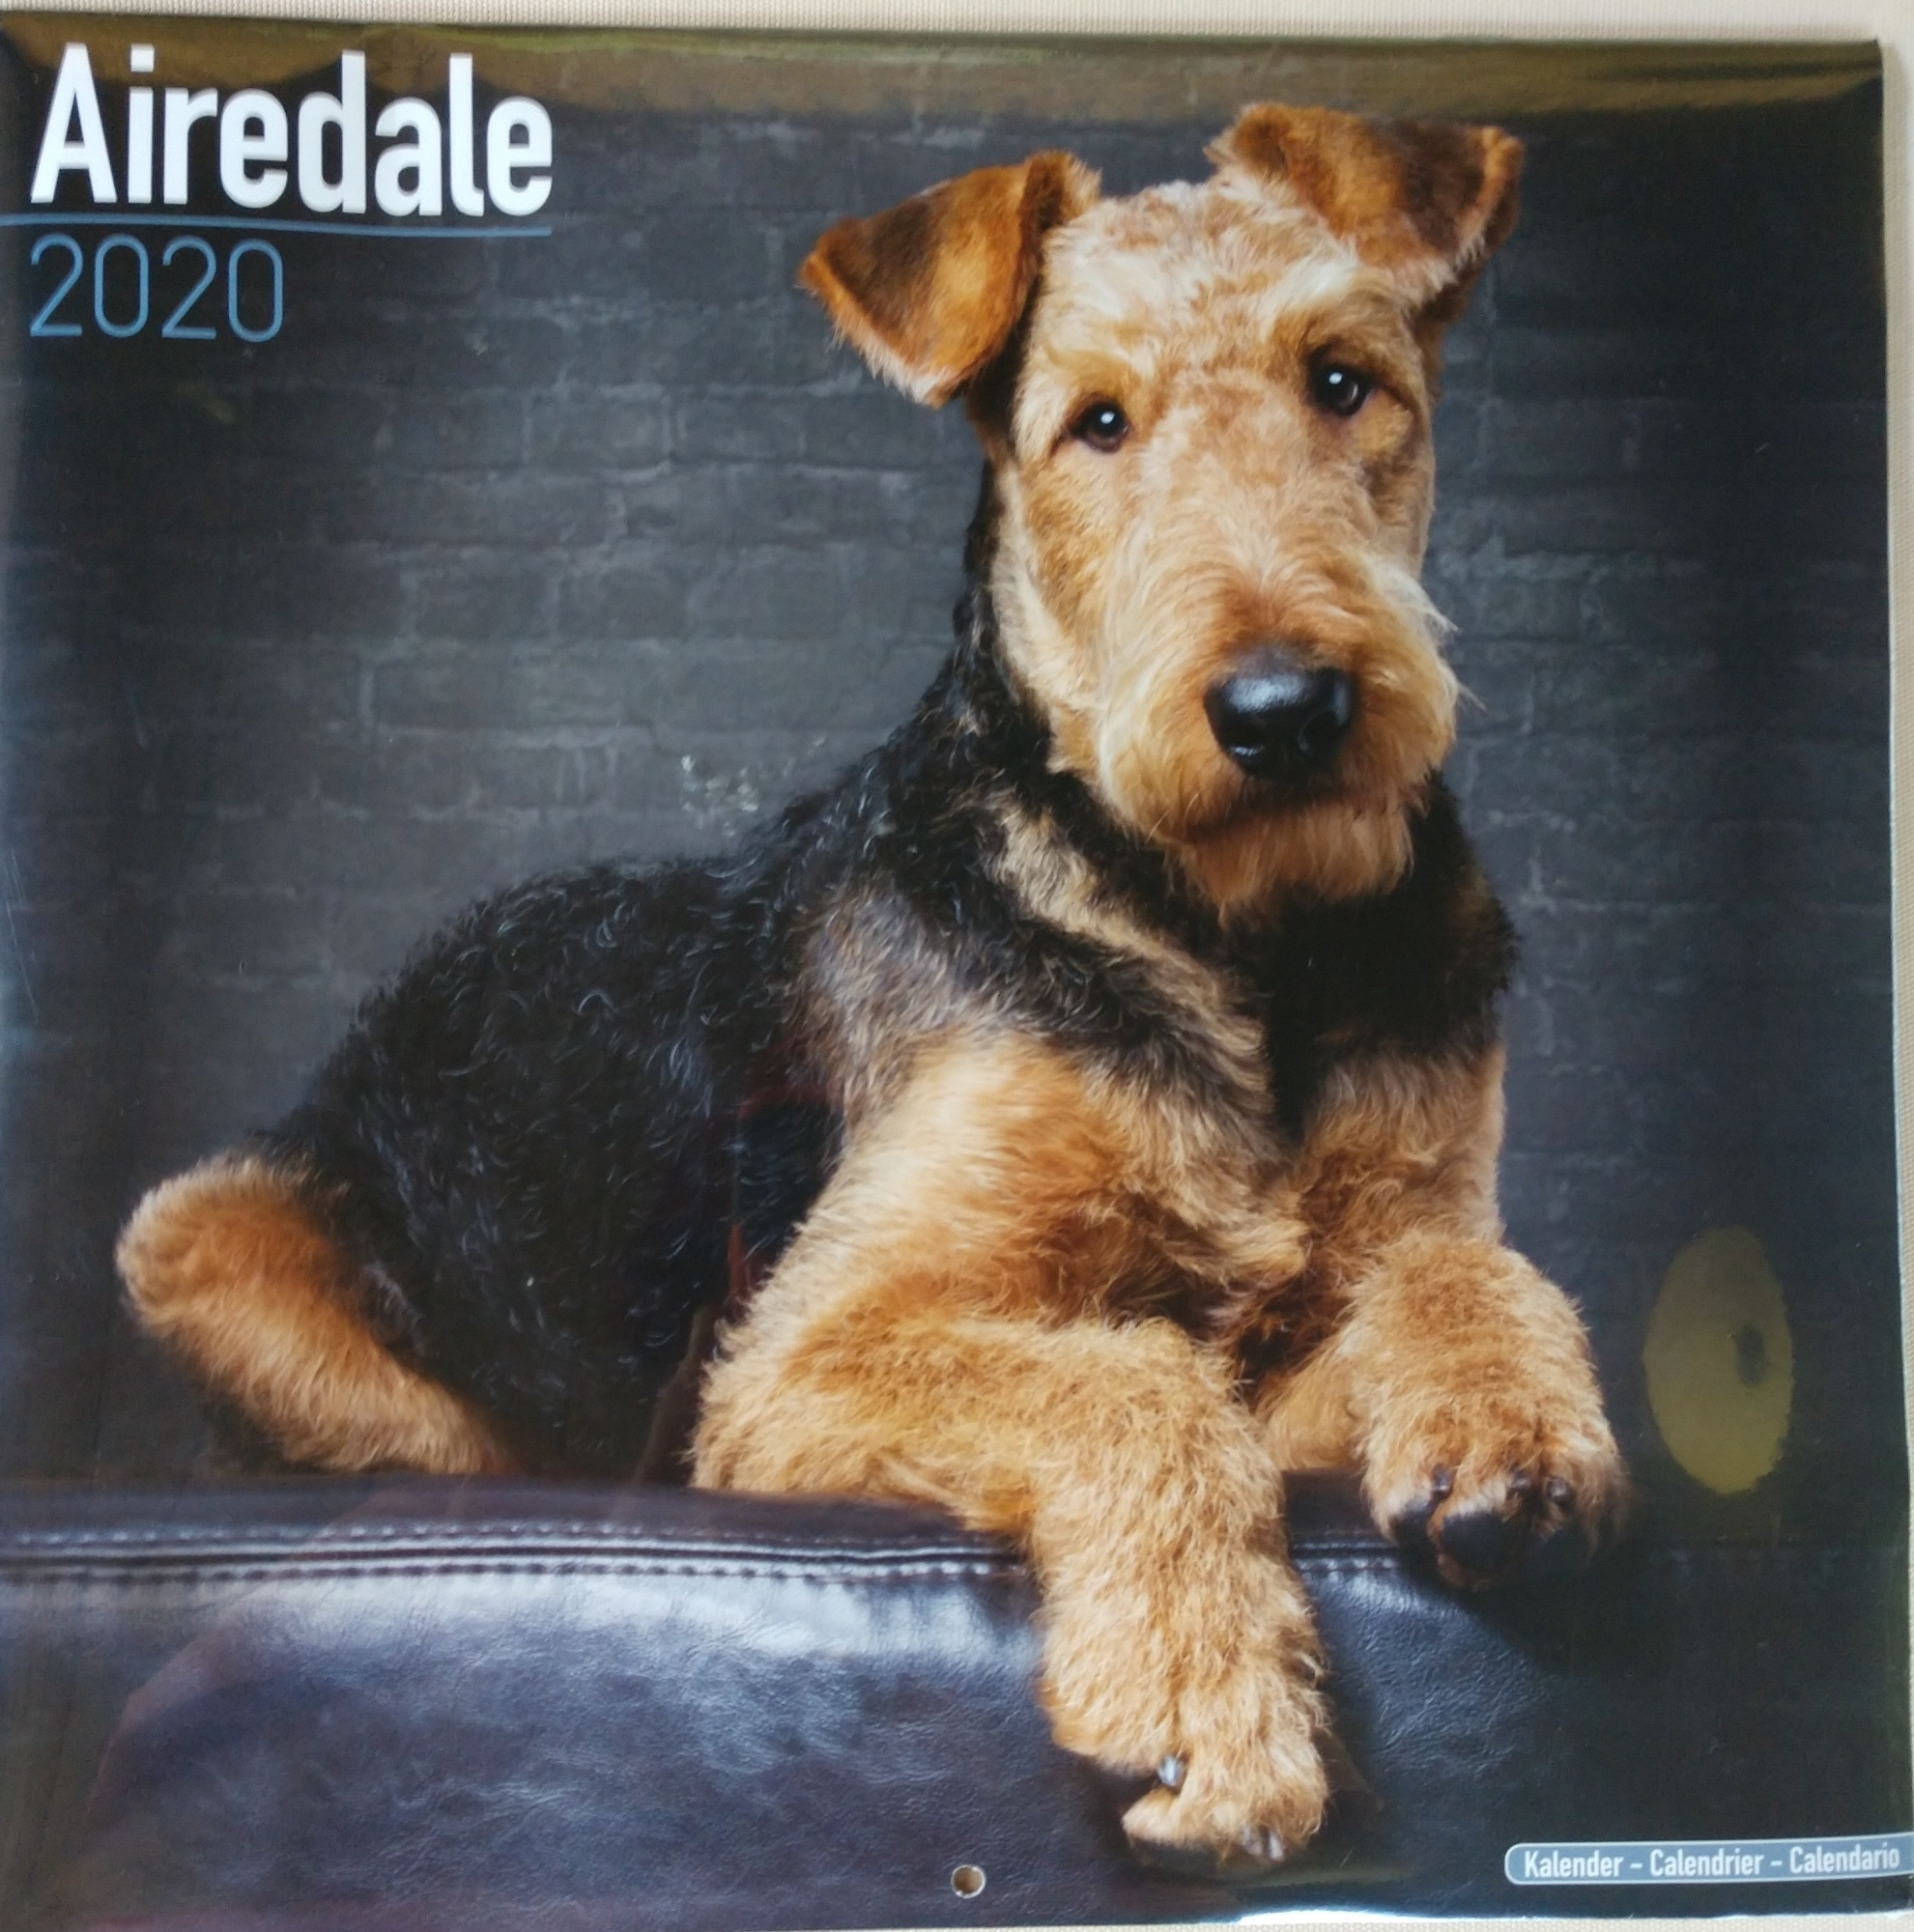 Calendario Estate 2020.Atra Airedale Terrier Rescue Adoption Finding Loving